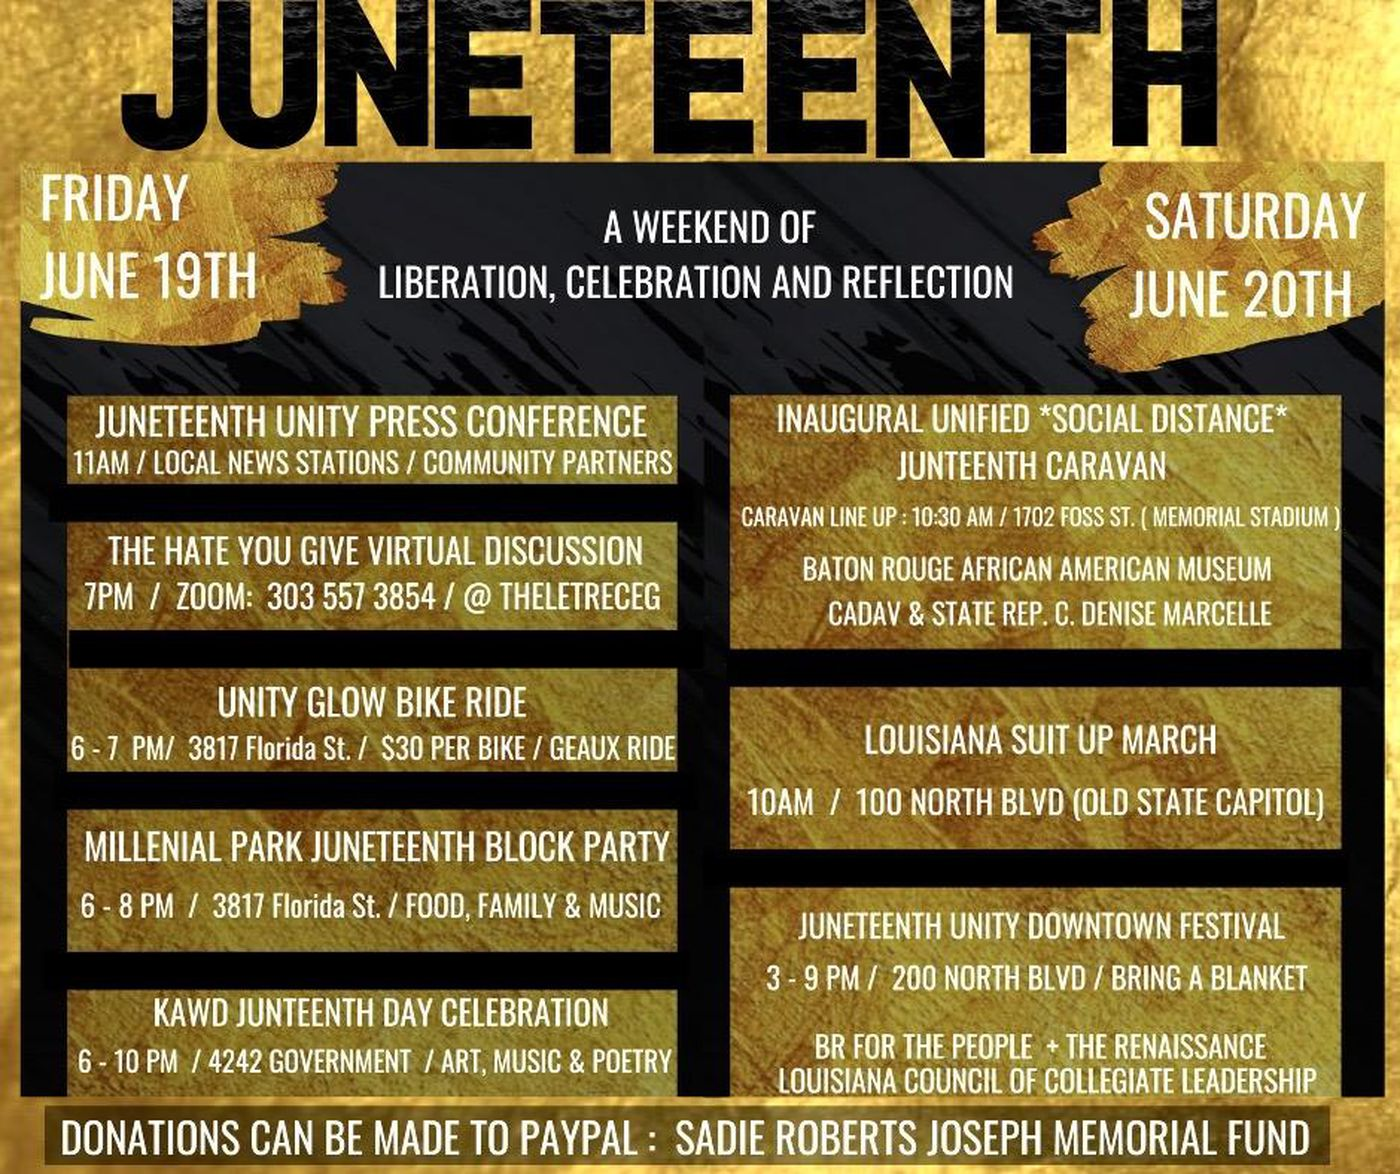 Juneteenth a weekend of celebration and reflection.